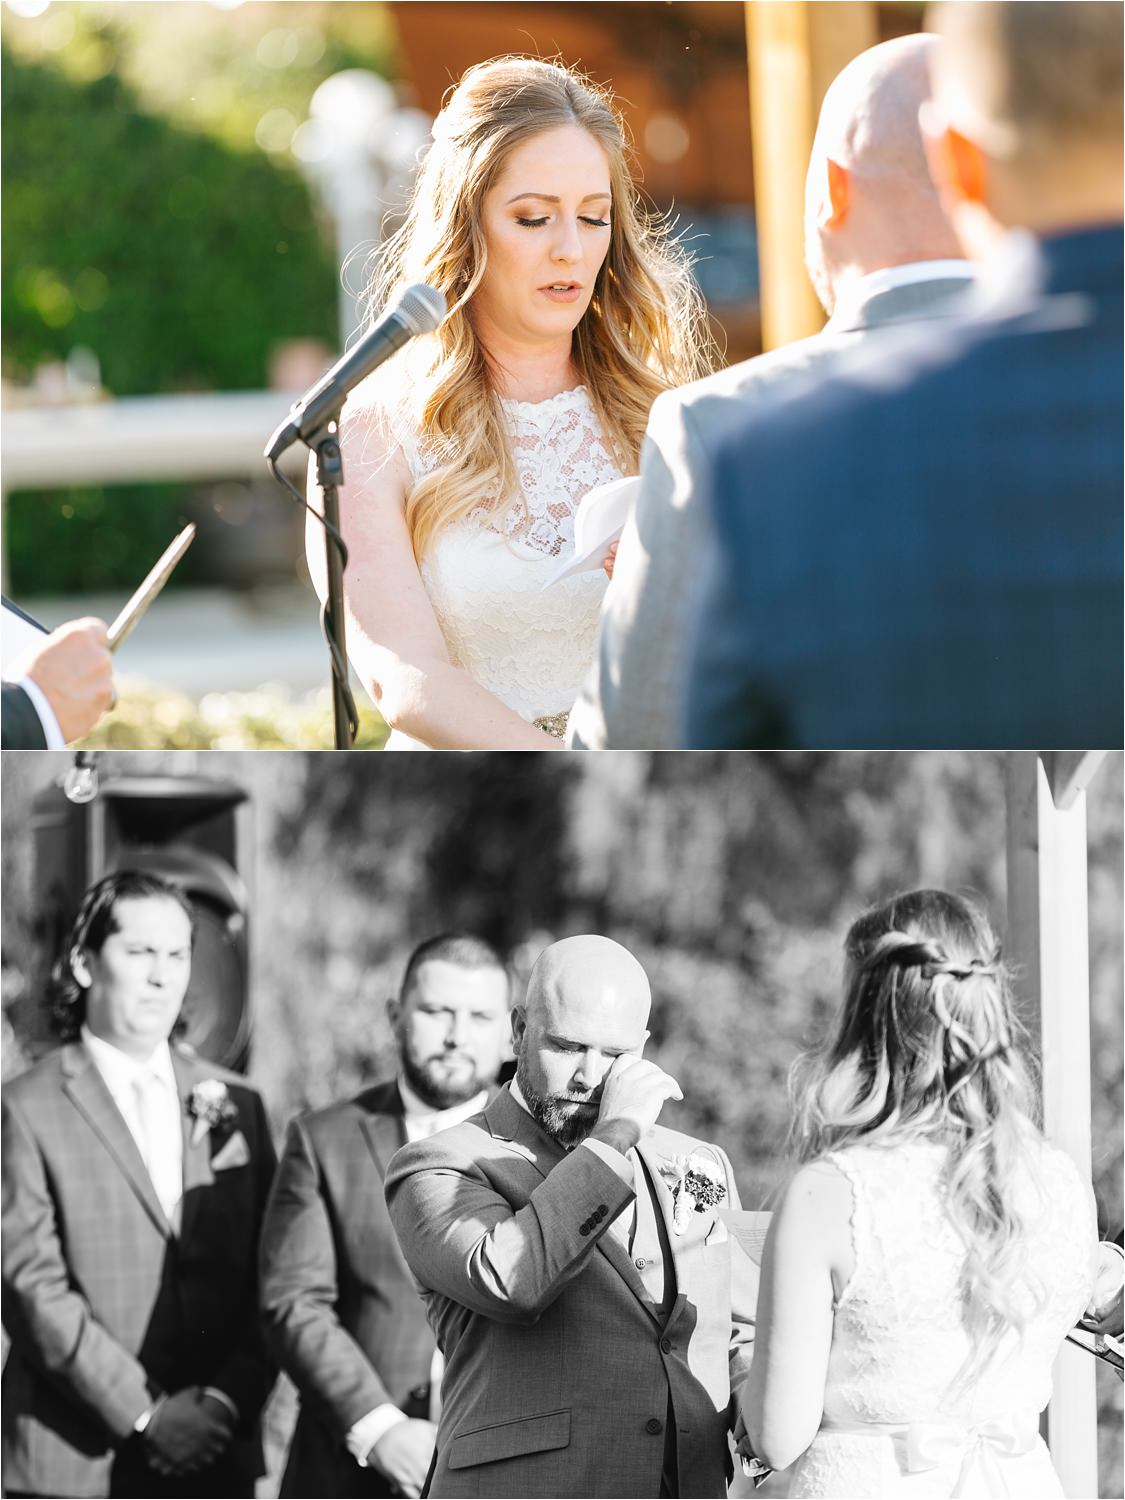 Emotional wedding vows during the wedding ceremony - https://brittneyhannonphotography.com